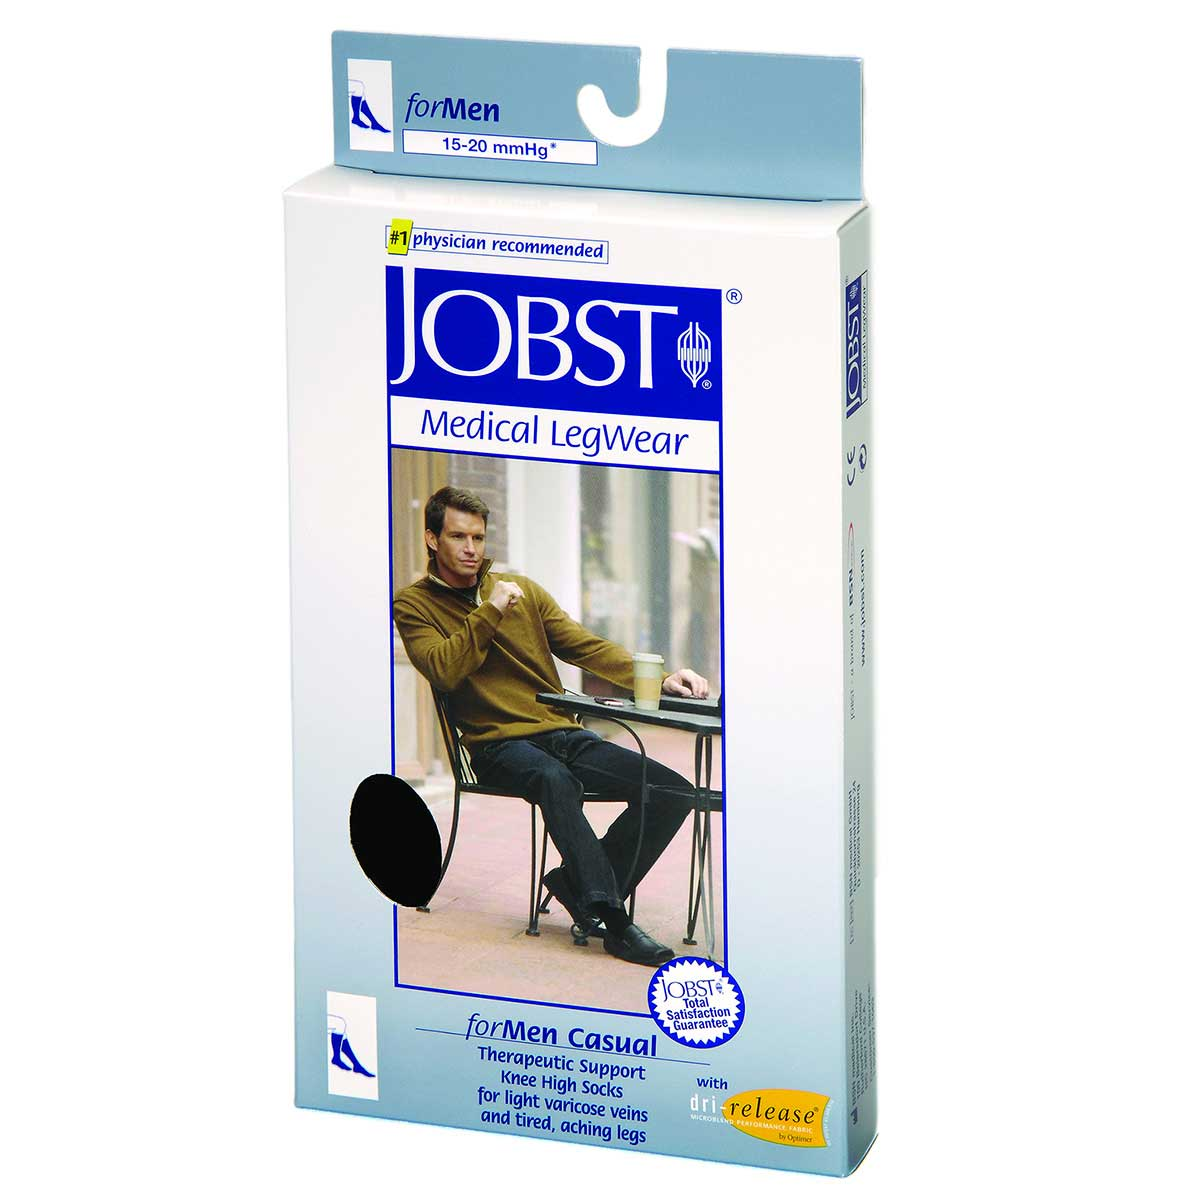 Jobst forMen Casual 30-40 mmHg Small Black Knee High